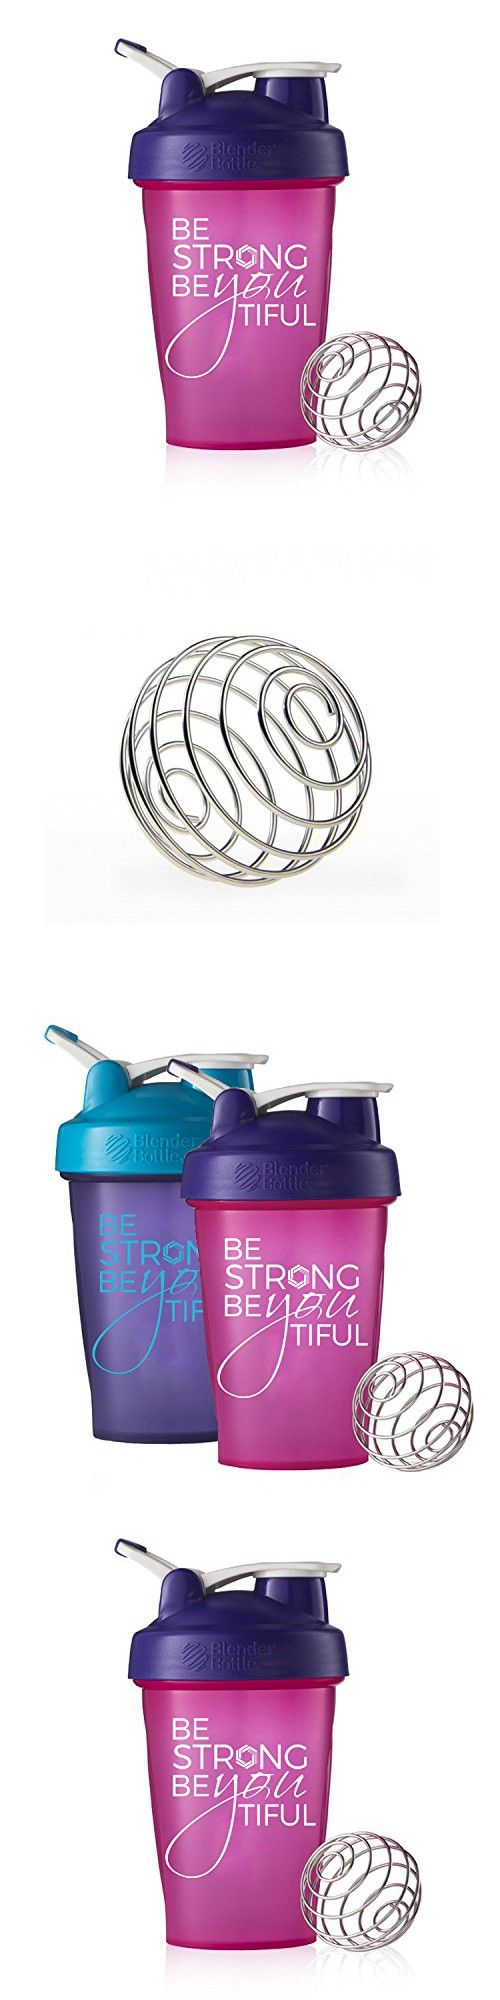 Be Strong BeYOUtiful Blender Bottle, 20oz Classic Protein Shaker Cup (Pink)